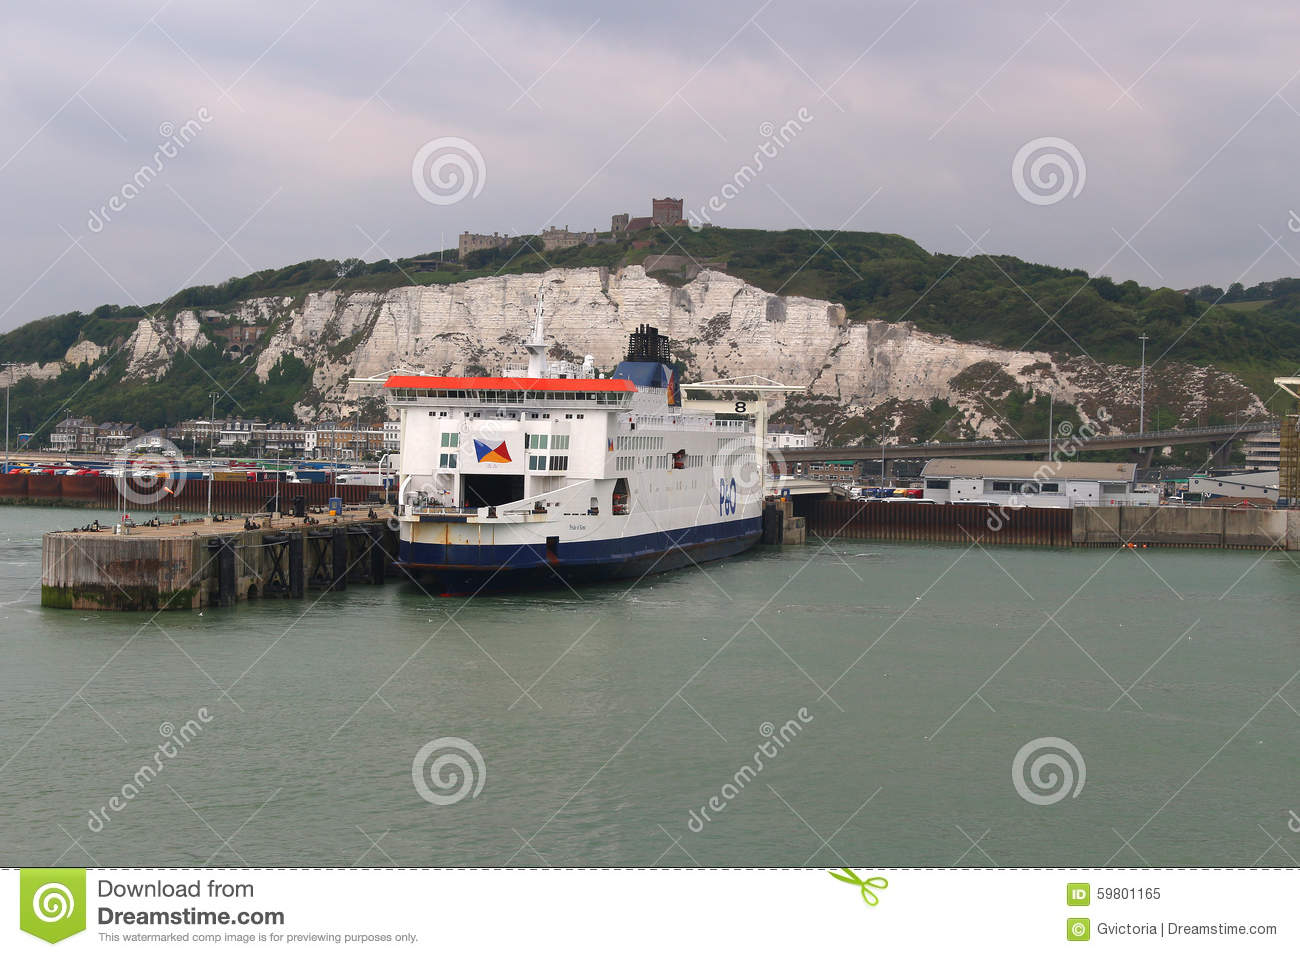 Dover United Kingdom  city images : DOVER, UNITED KINGDOM, JUNE 20, 2015: Ferry boat docked in the Port of ...